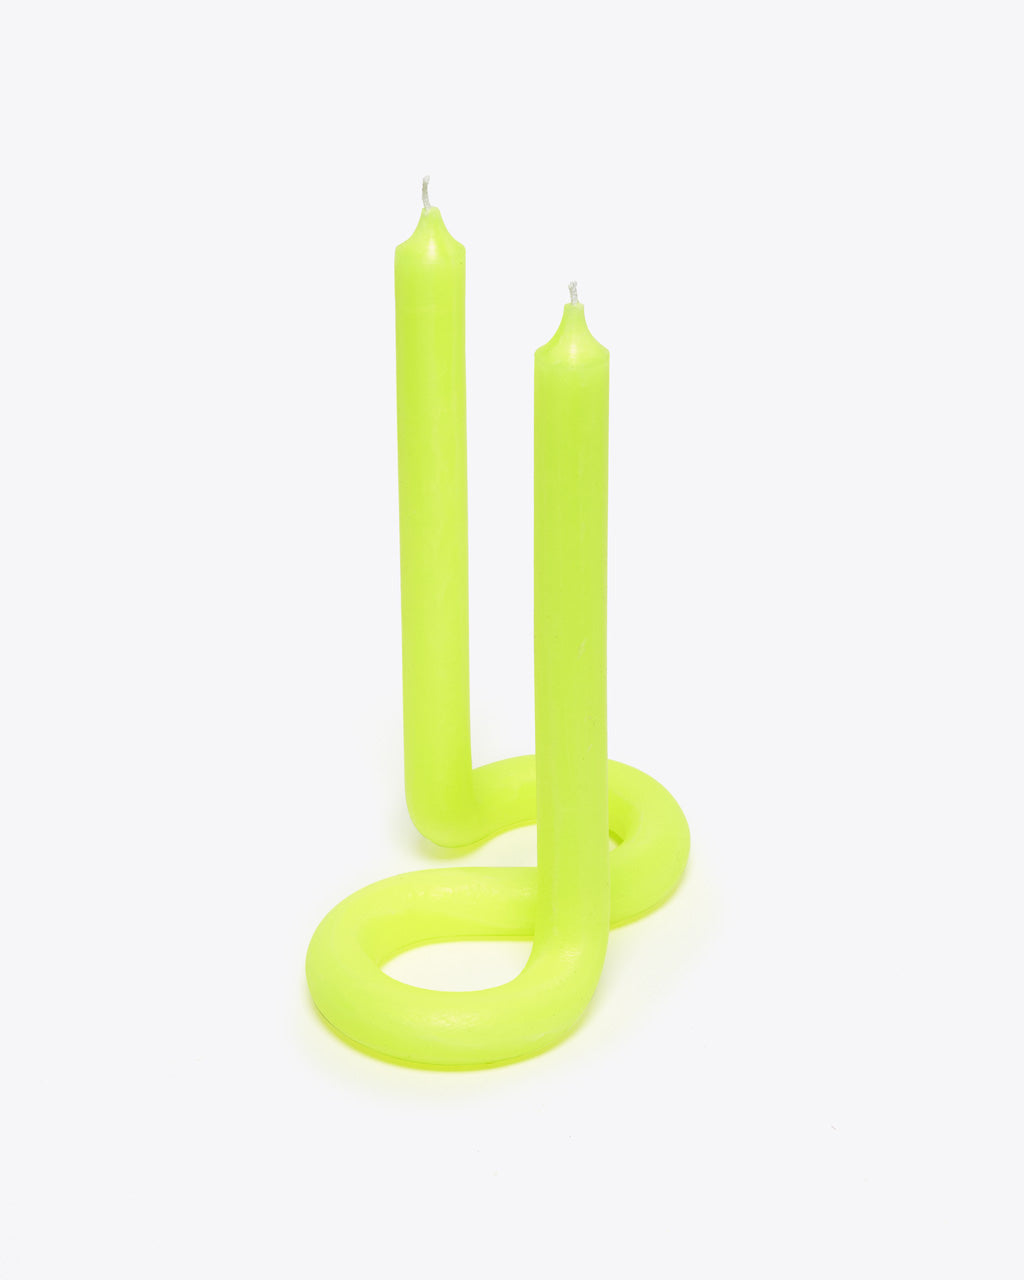 neon yellow twisted candle with 2 wicks